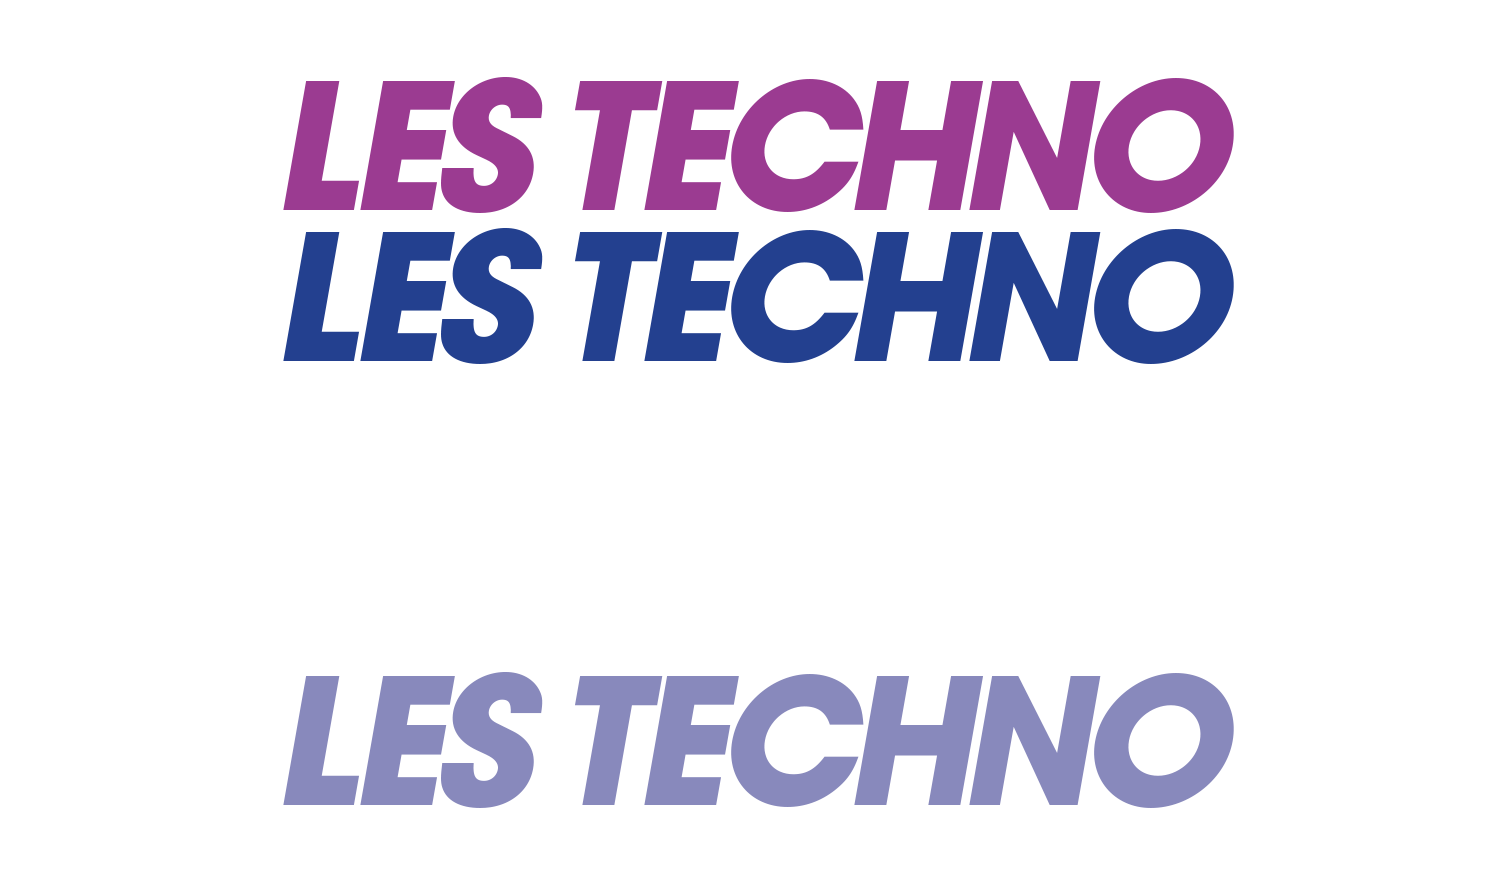 Les techno Web page REVIEWS 2